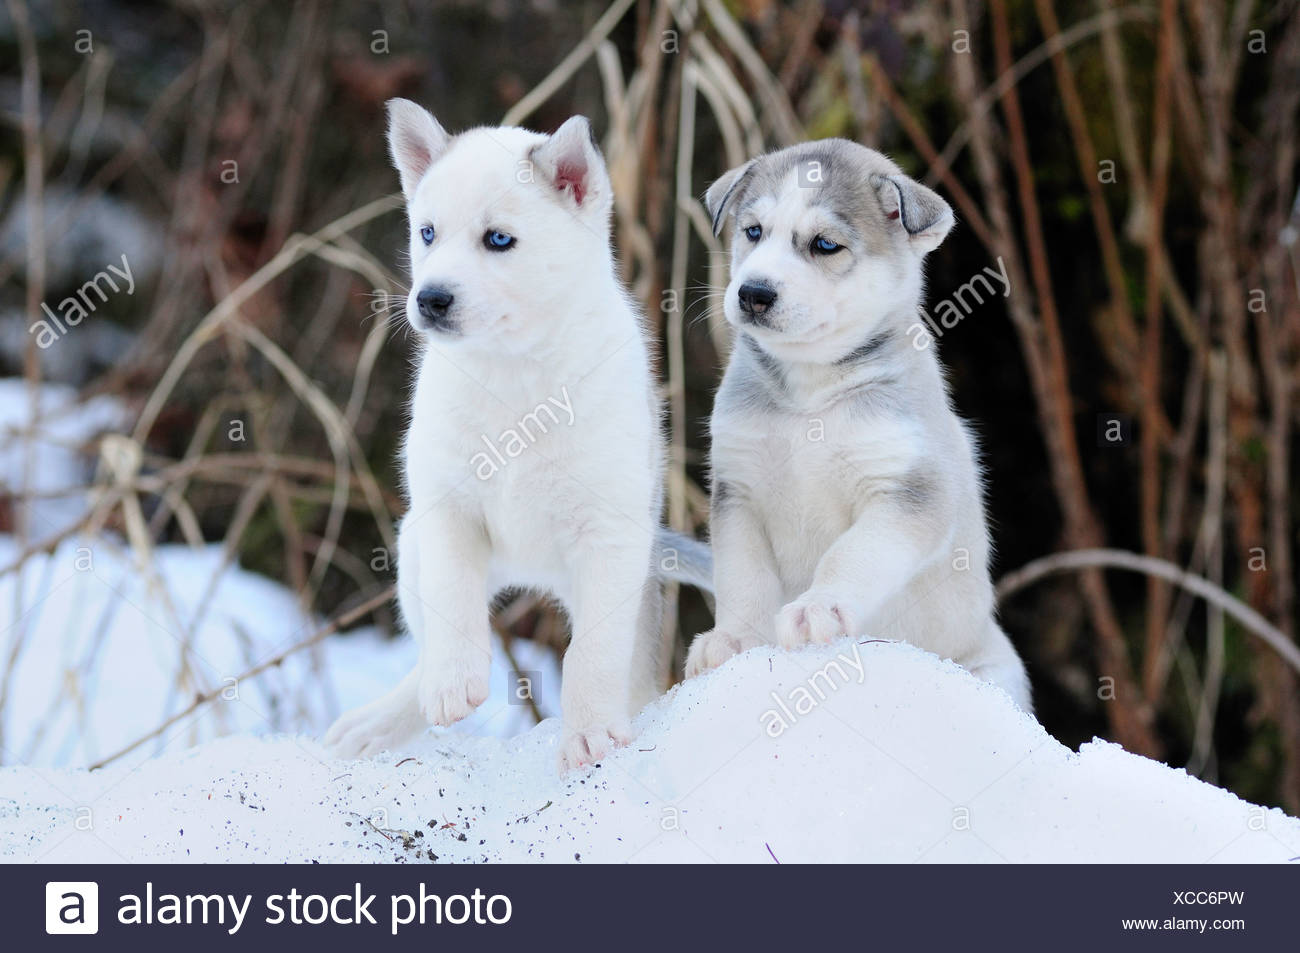 Six week old purebred Siberian Husky puppies in the snow at Bright Angel Park, Cowichan Station, BC. - Stock Image